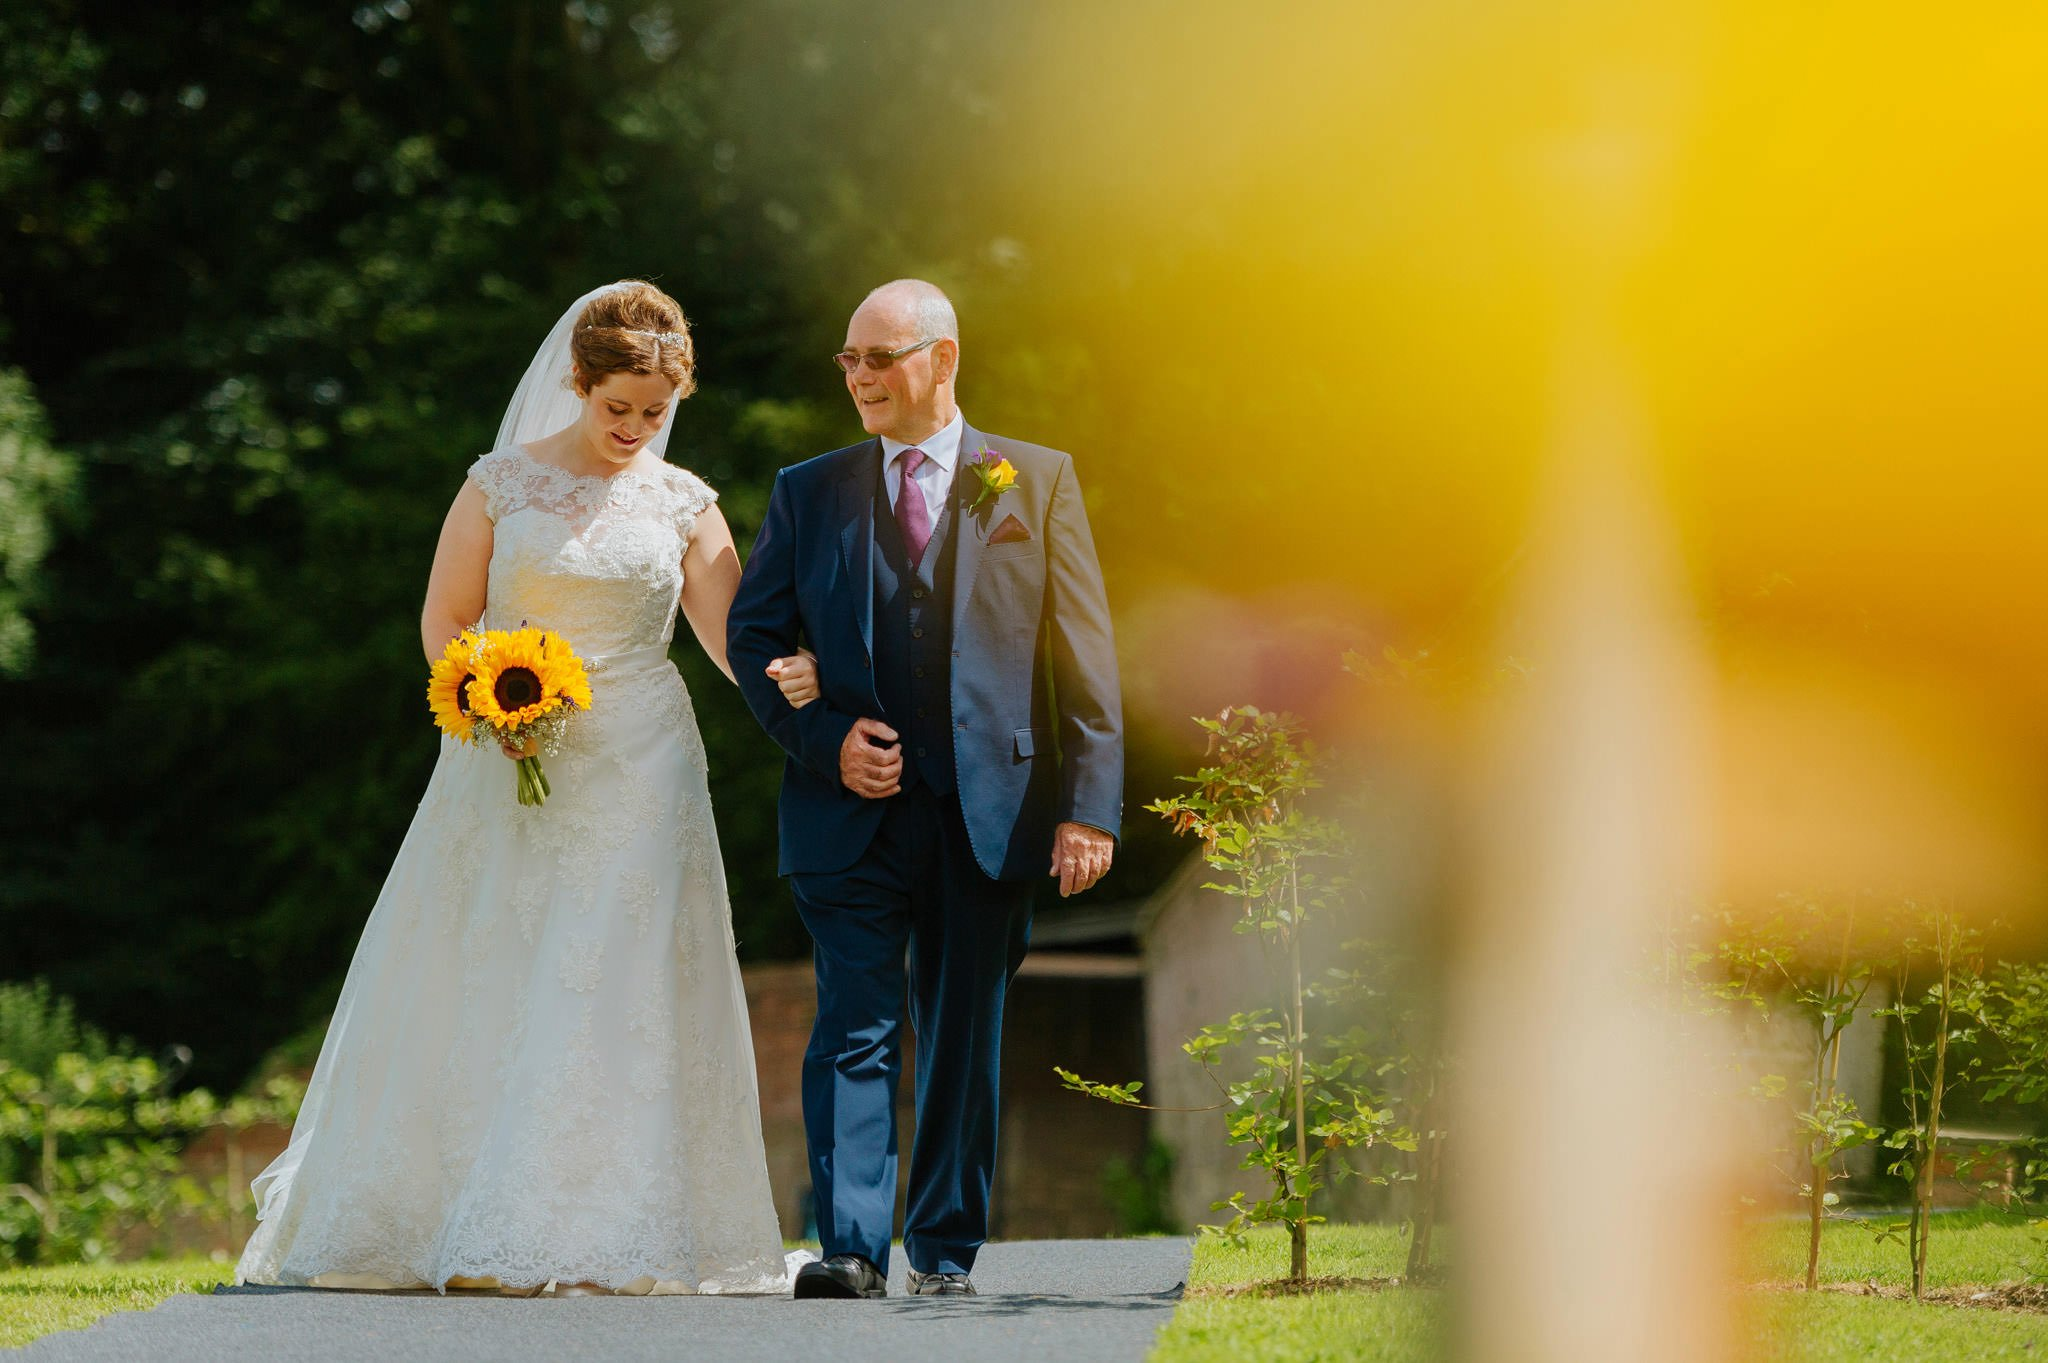 Wedding photography at Homme House in Herefordshire, West Midlands 25